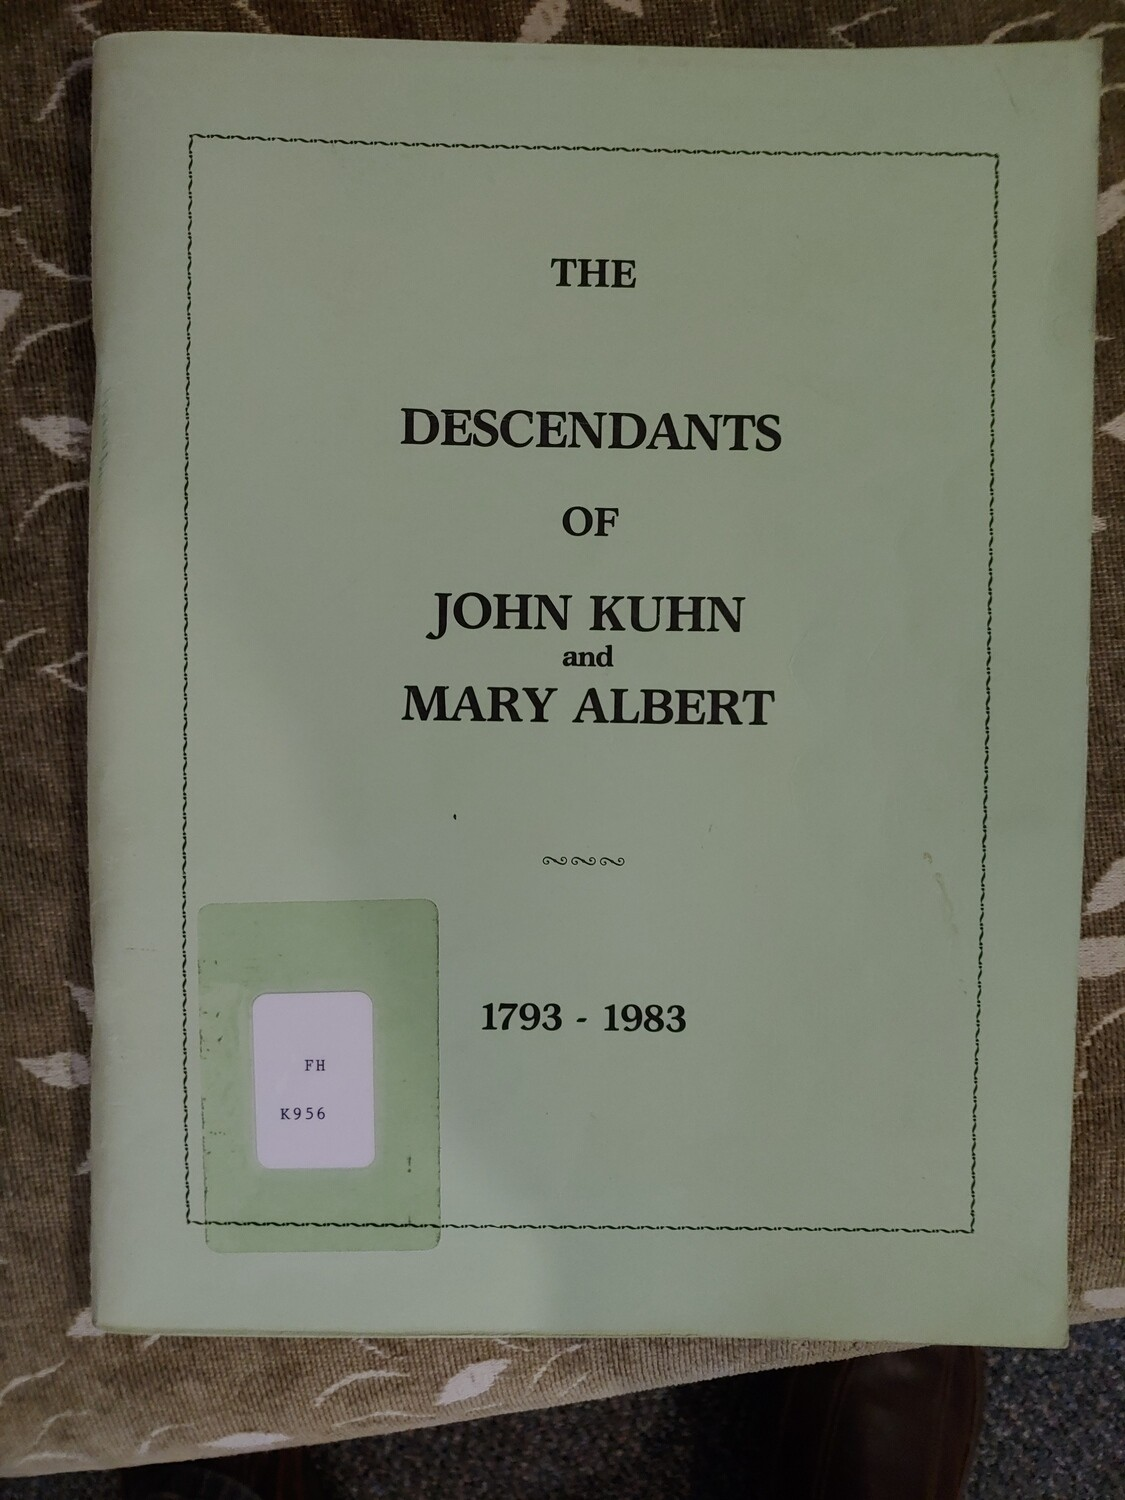 The Descendants of John Kuhn and Mary Albert